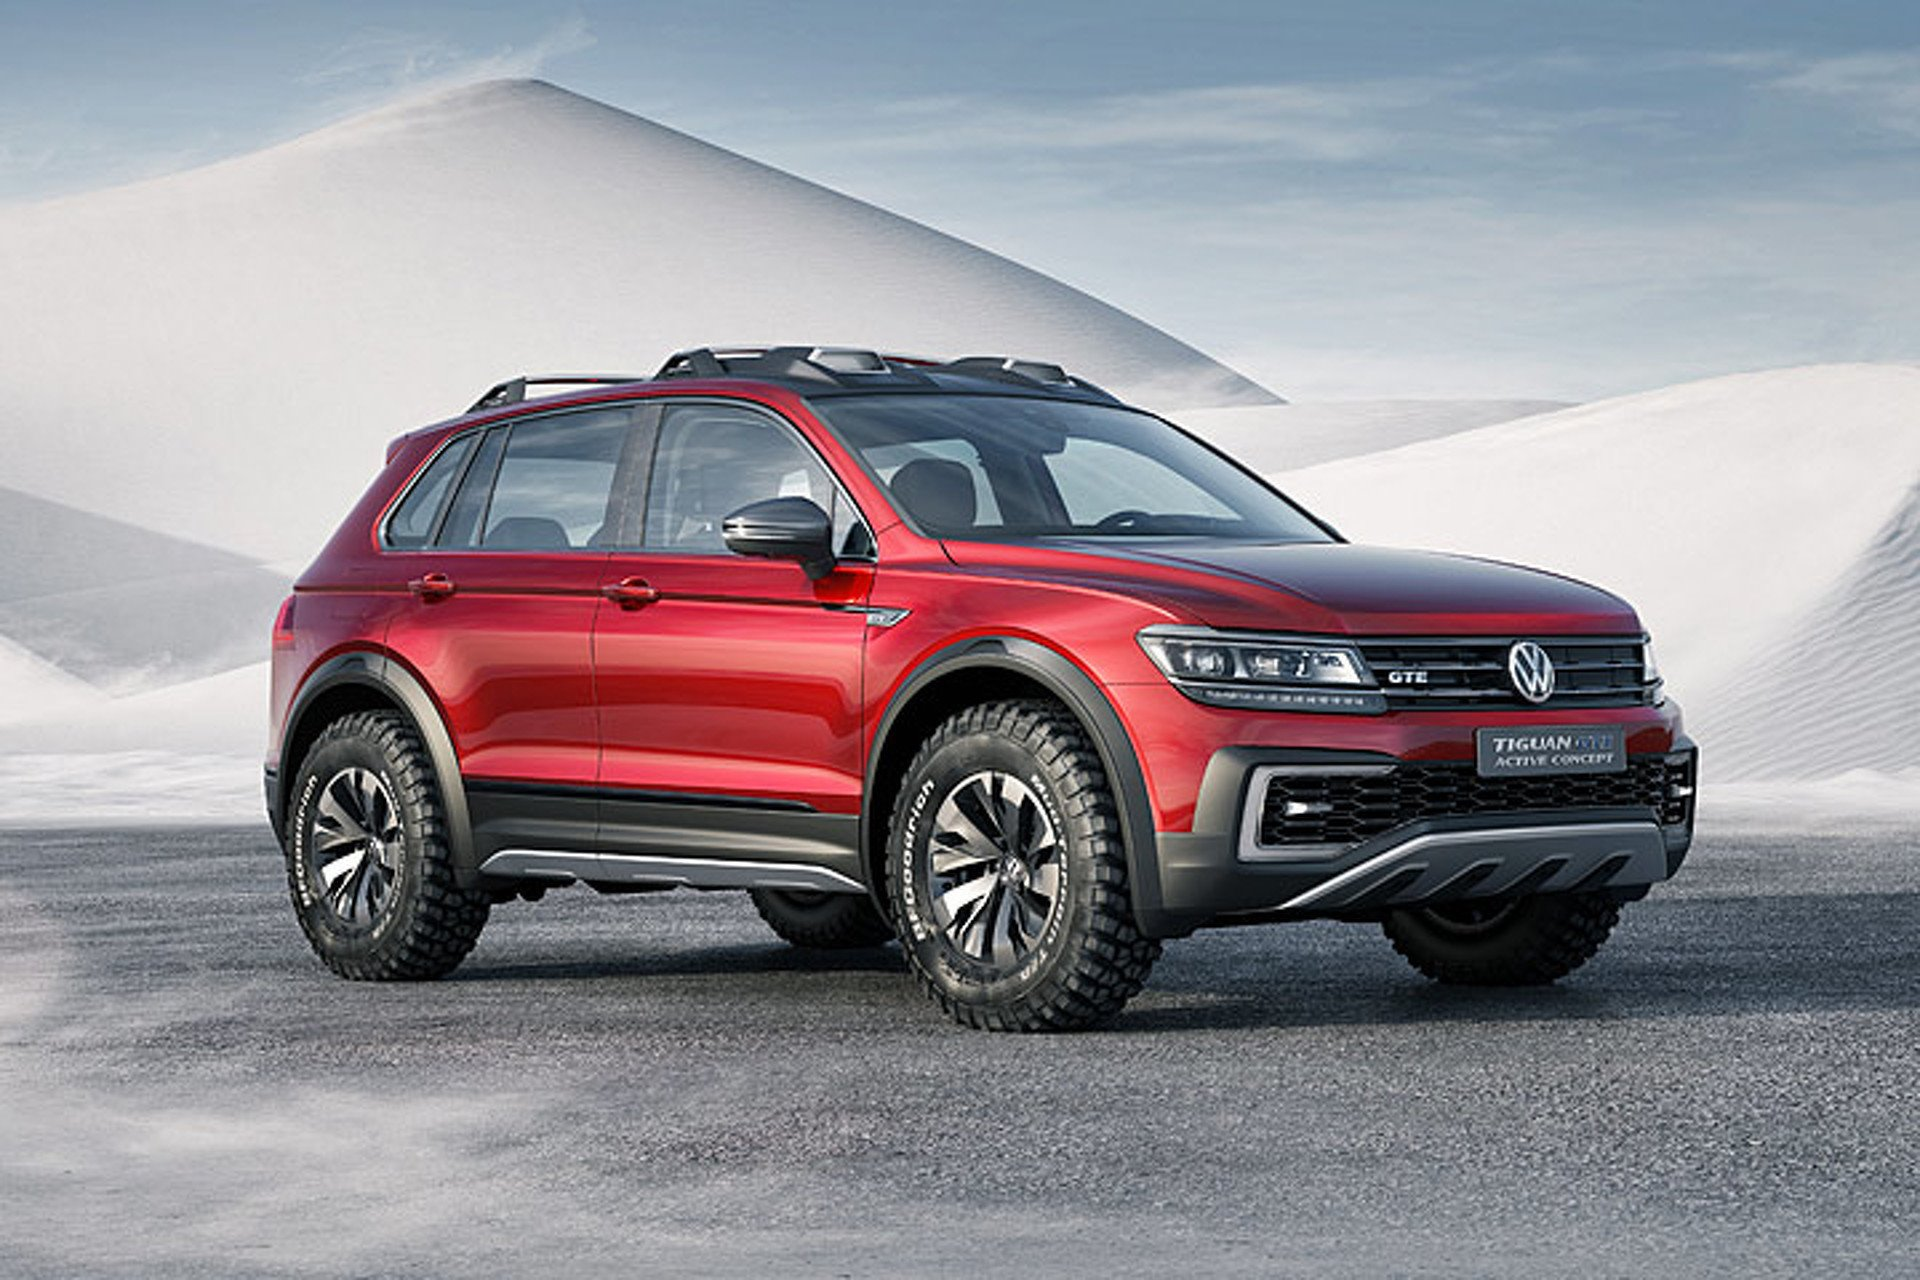 New 2019 Volkswagen-Tiguan 2.0T S Tiguan 2.0T S for sale $24,295 at M and V Leasing in Brooklyn NY 11223 1